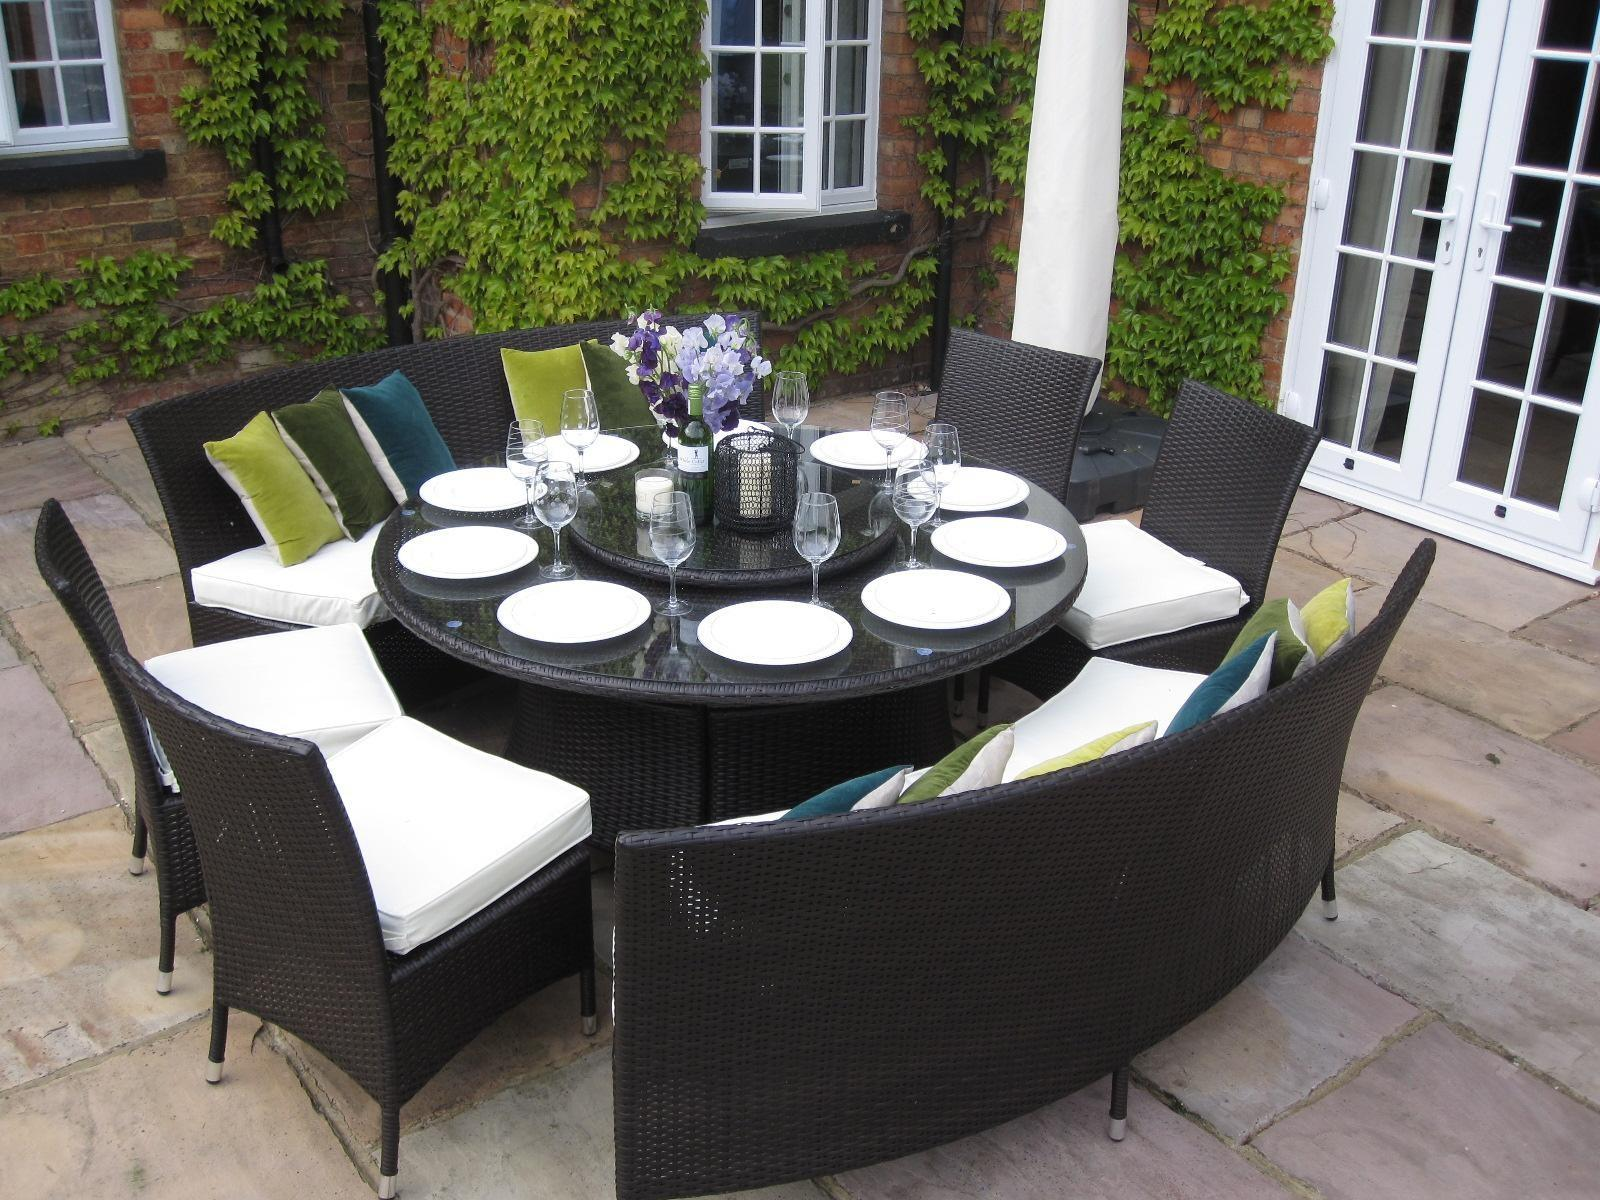 Lovely Outdoor Dining Table Decorations Light Room